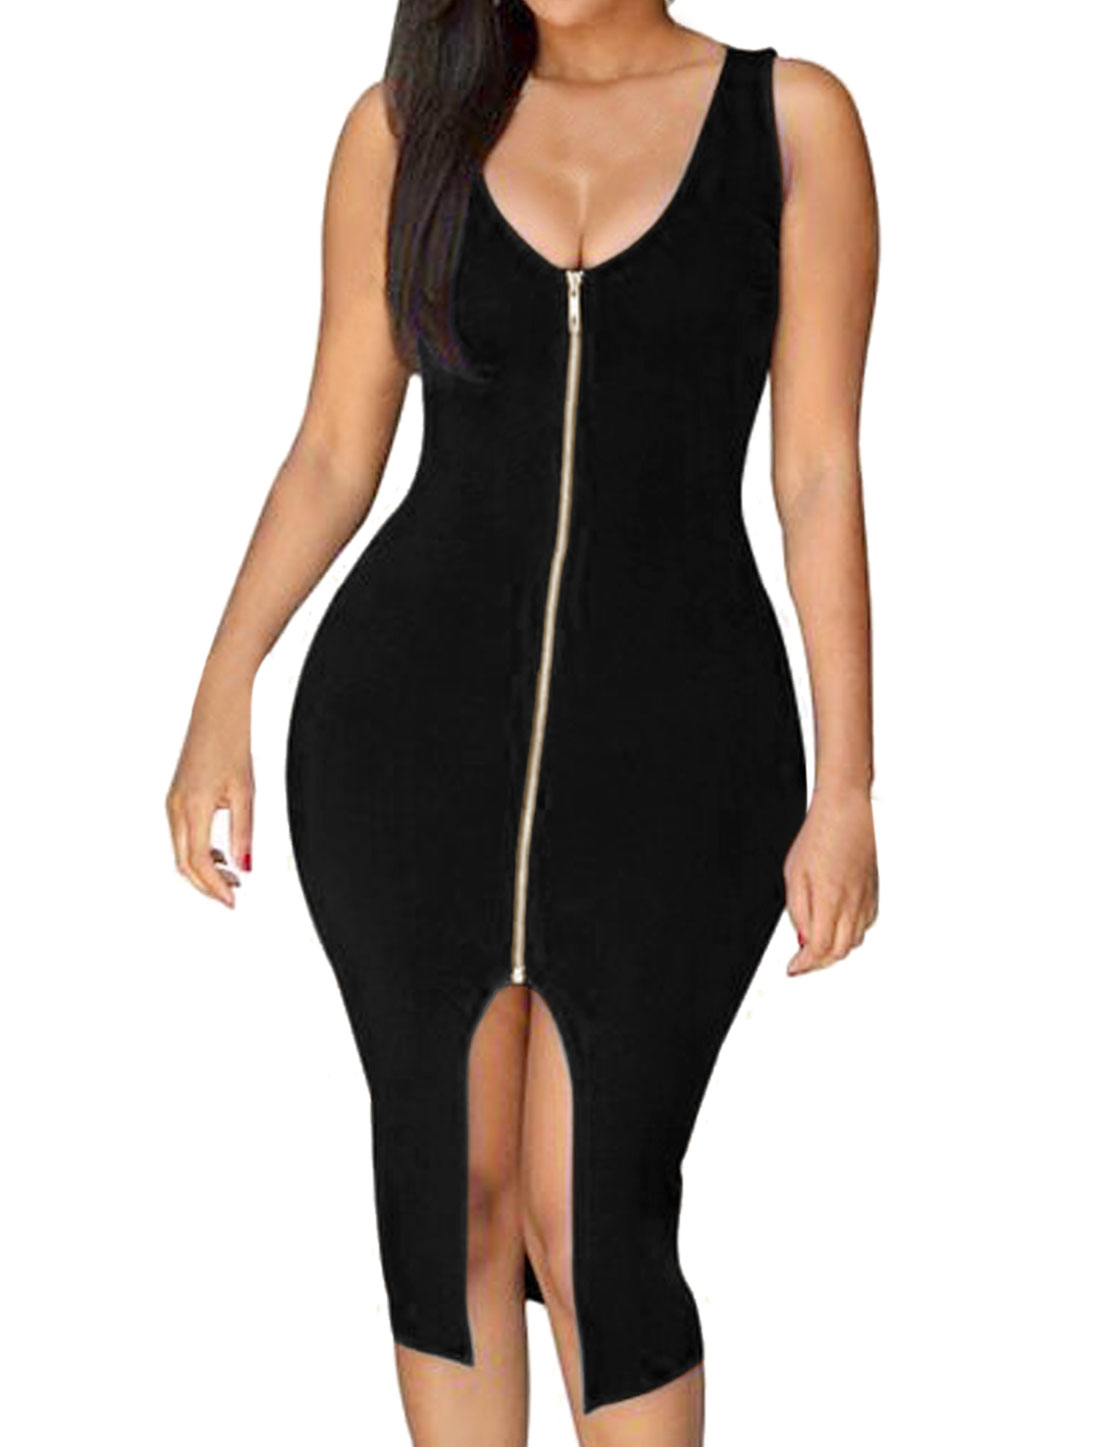 Lady Sleeveless Scoop Neck Exposed Zipper Split Front Bodycon Dress Black L